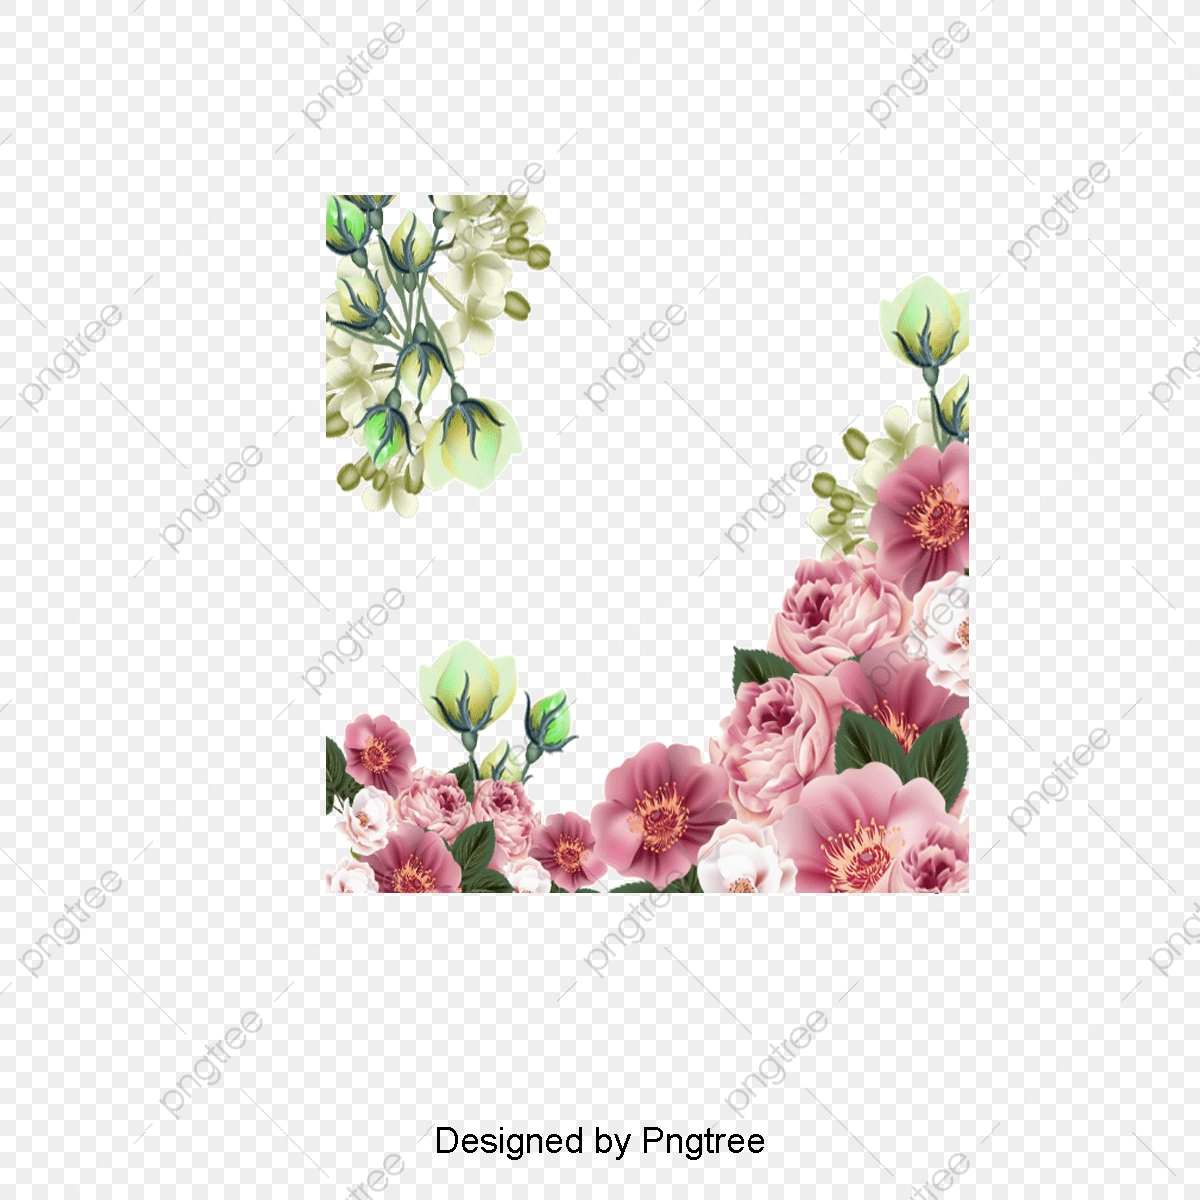 Beautiful Flowers Vector Illustration, Illustration, Flowers.